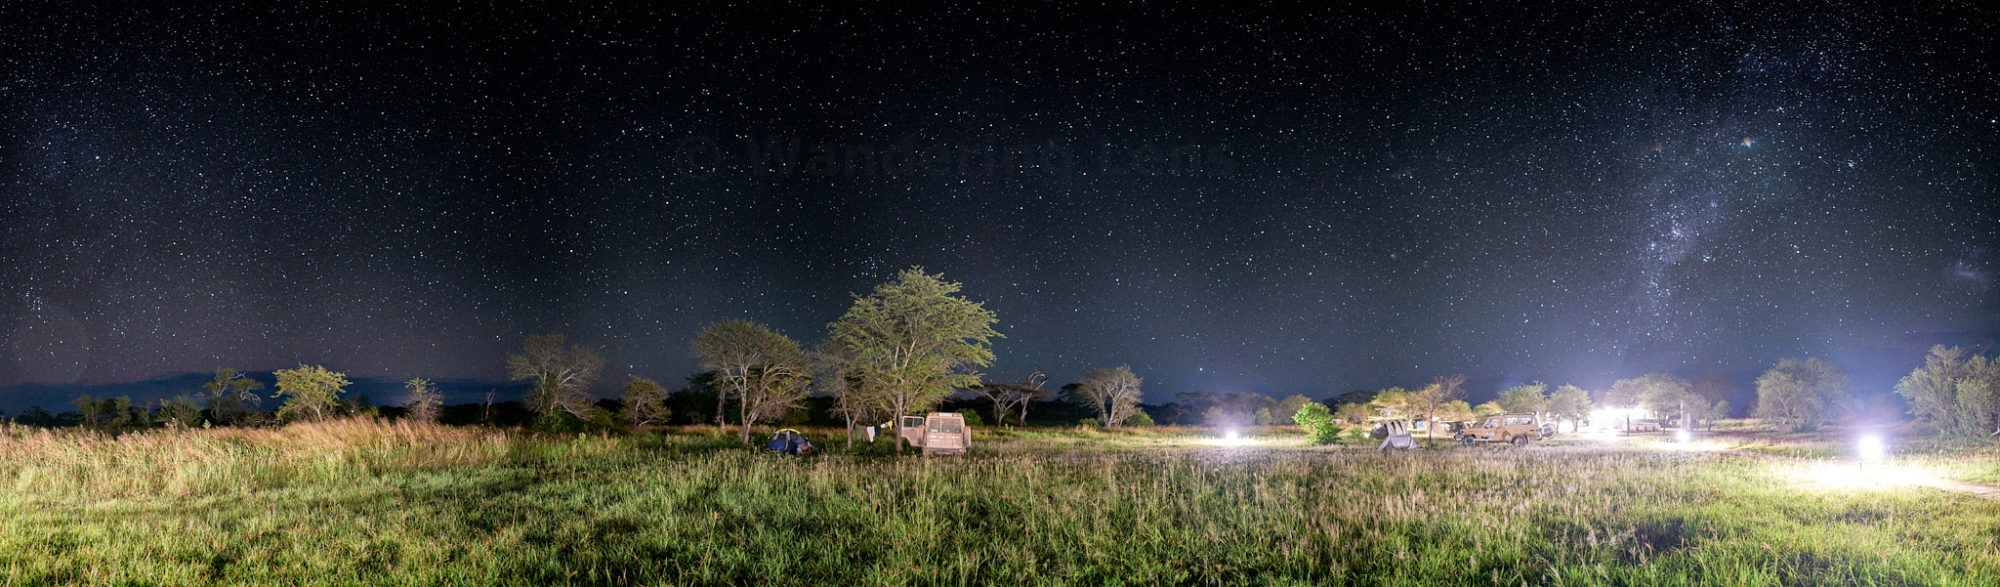 A panoramic of our camp at night in the Serengeti National Park, Tanzania.